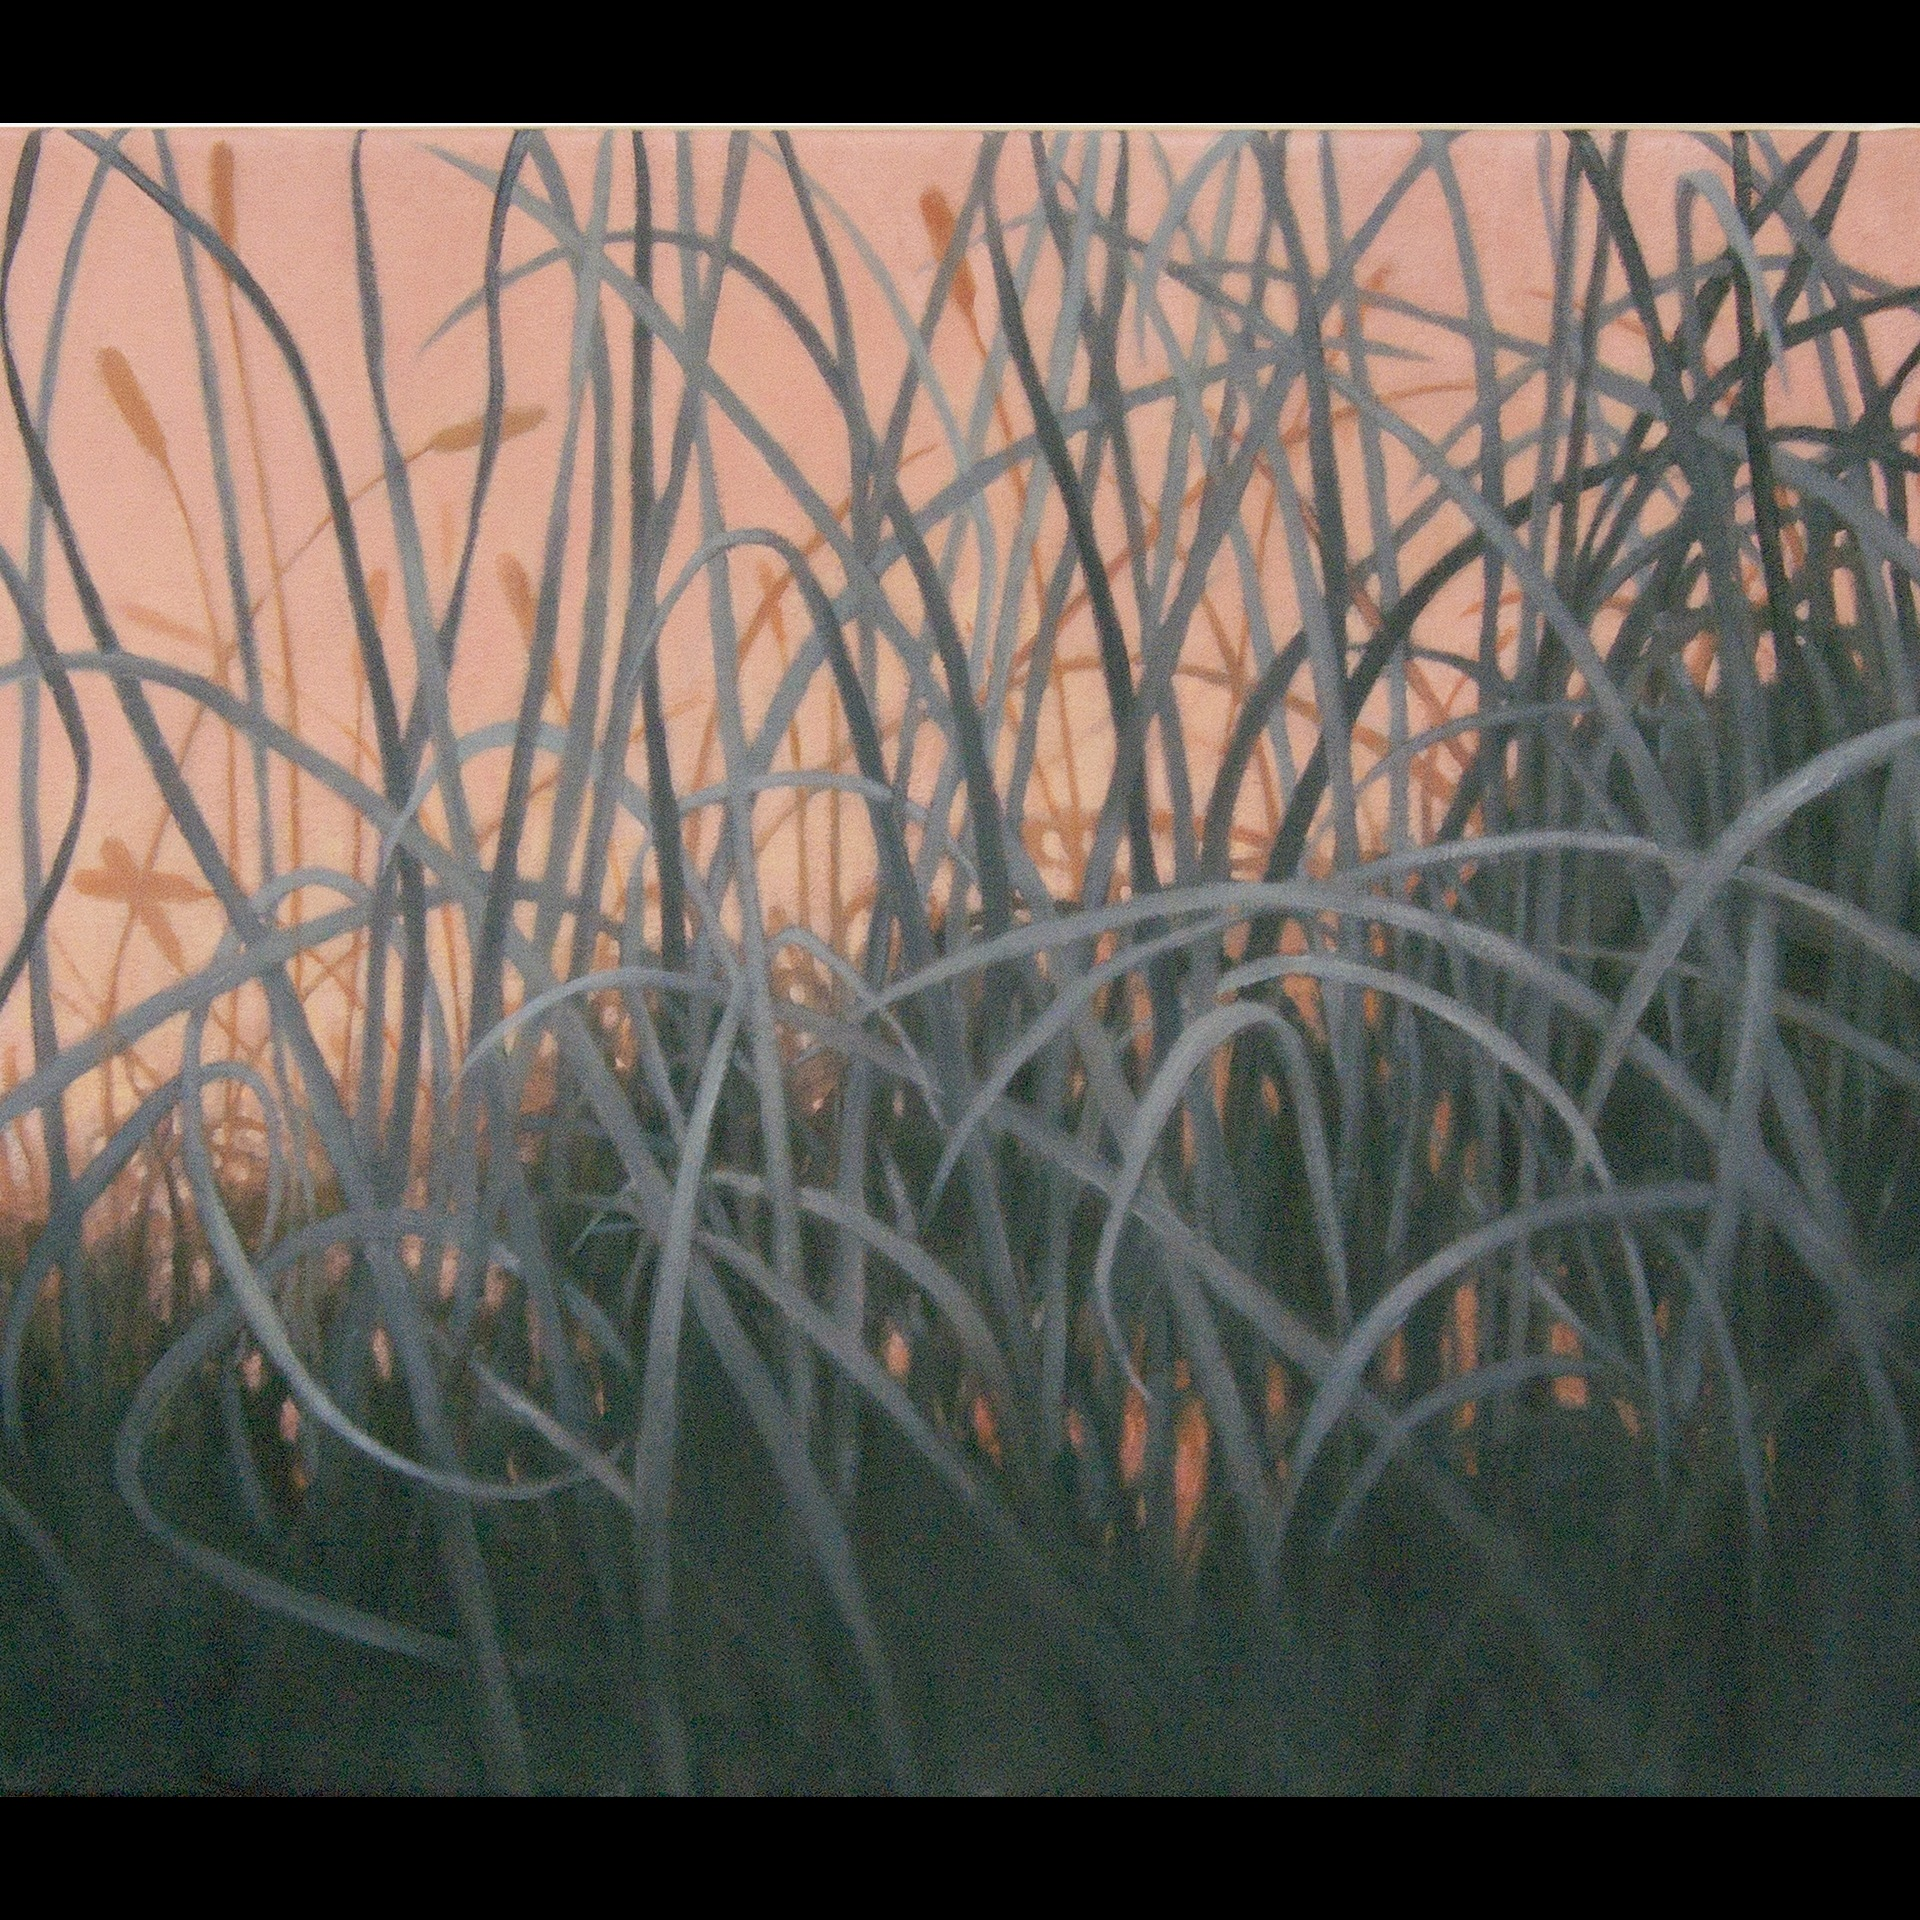 oil painting of grey grasses against pink background by Nanci Erskine